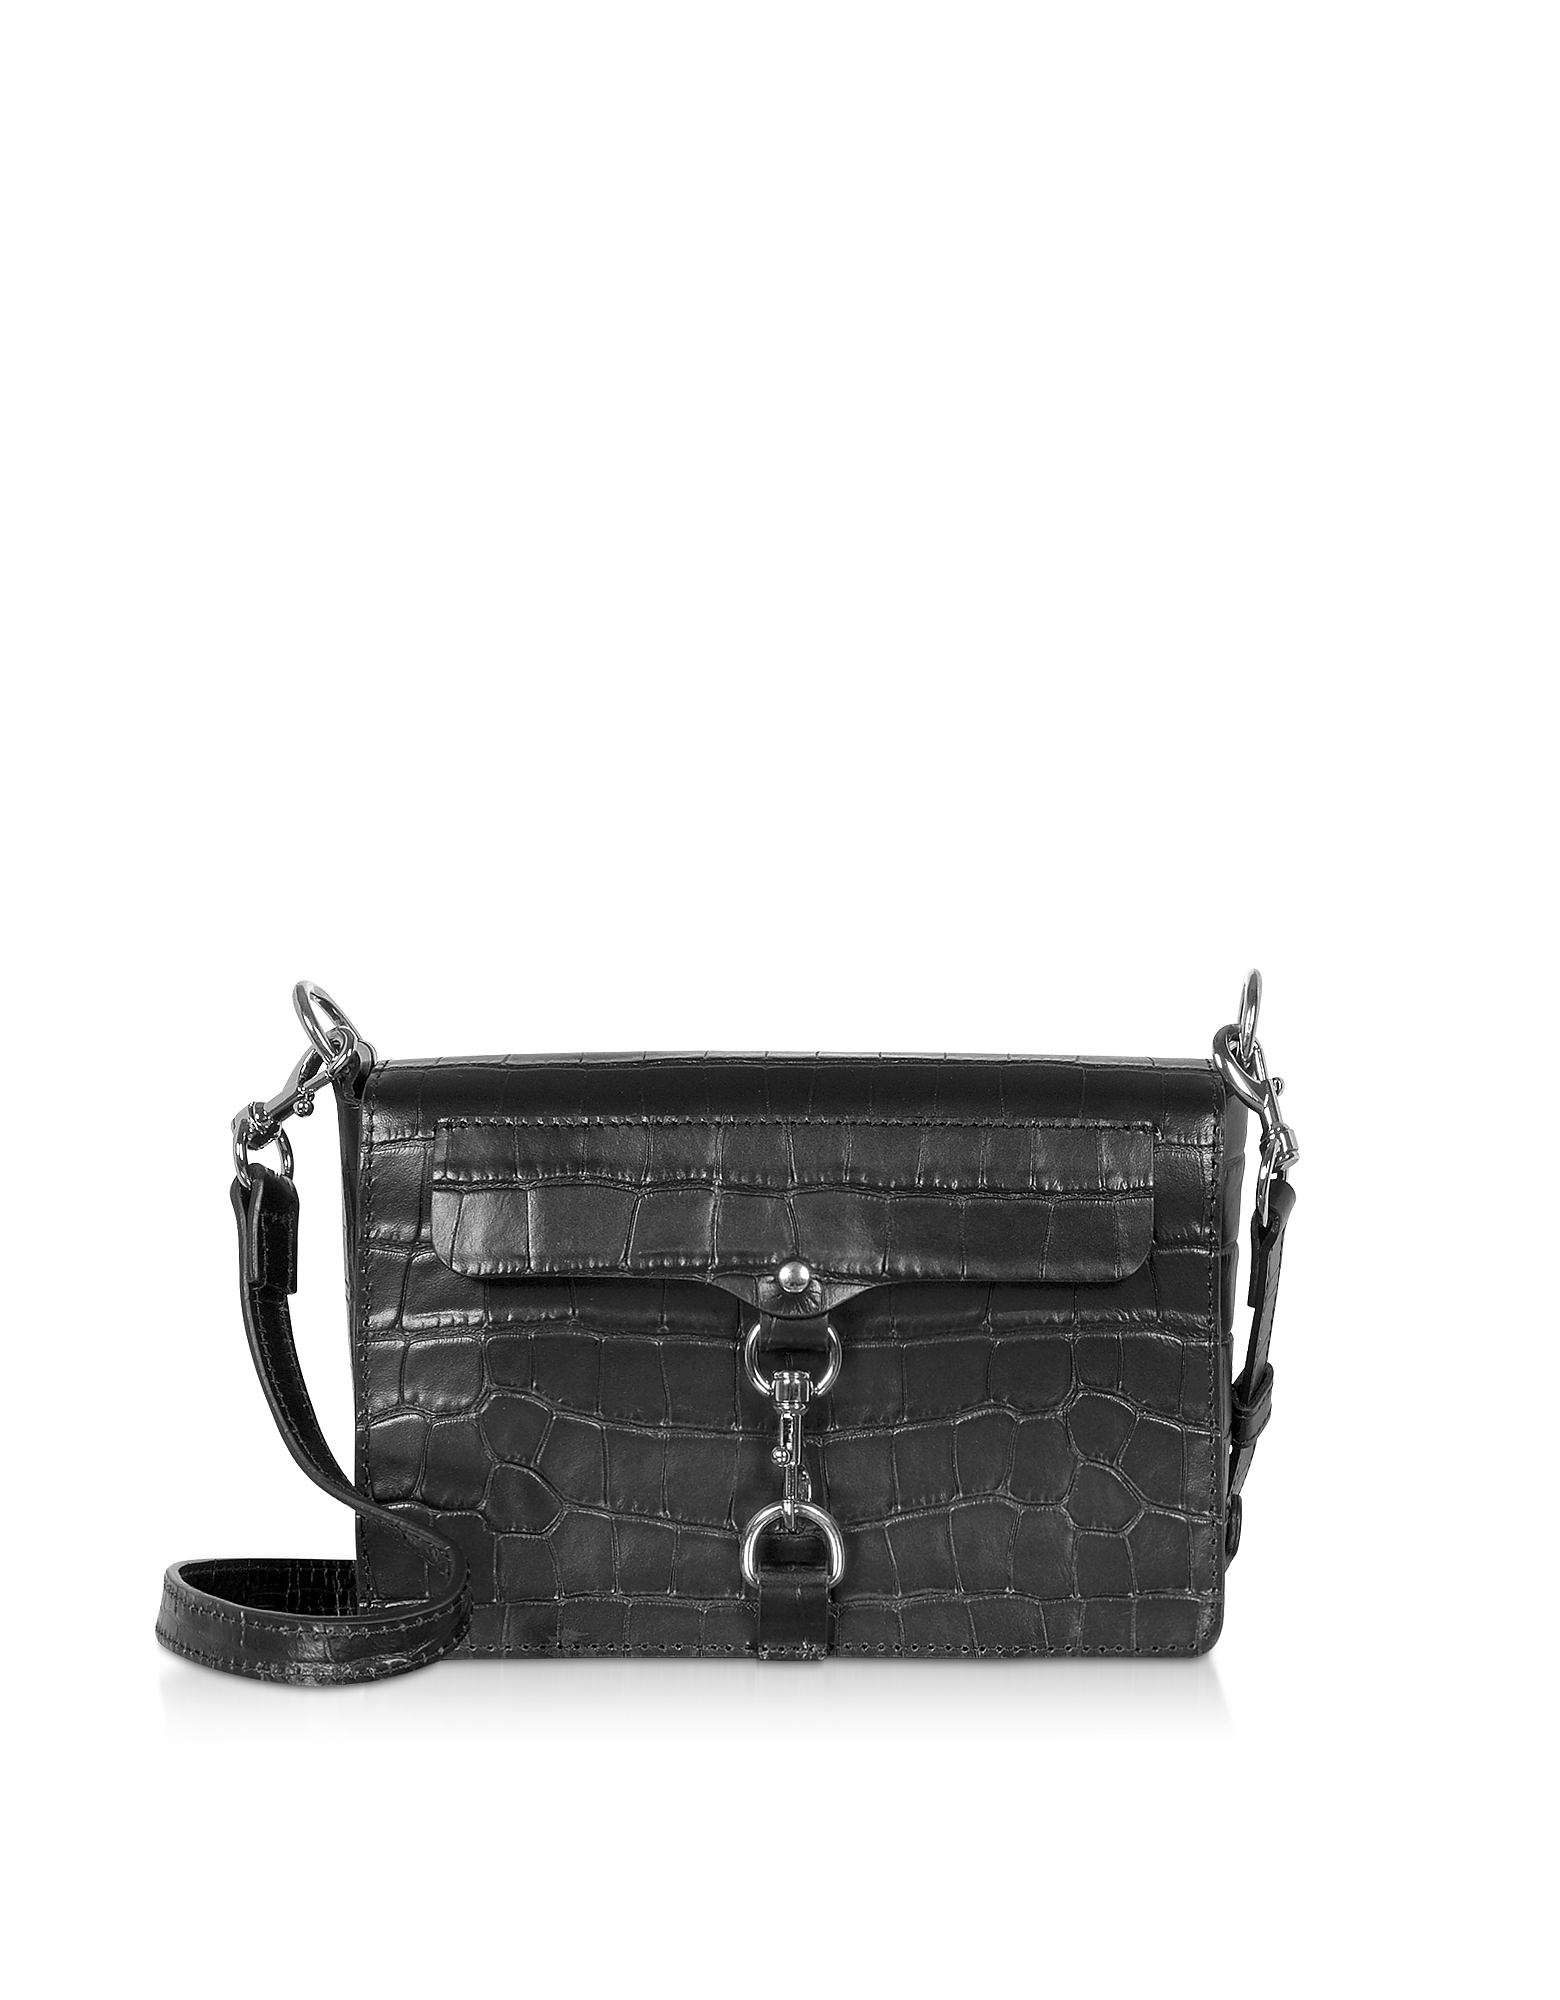 Rebecca Minkoff Designer Handbags, Croco Embossed Leather Mab Flap Crossbody